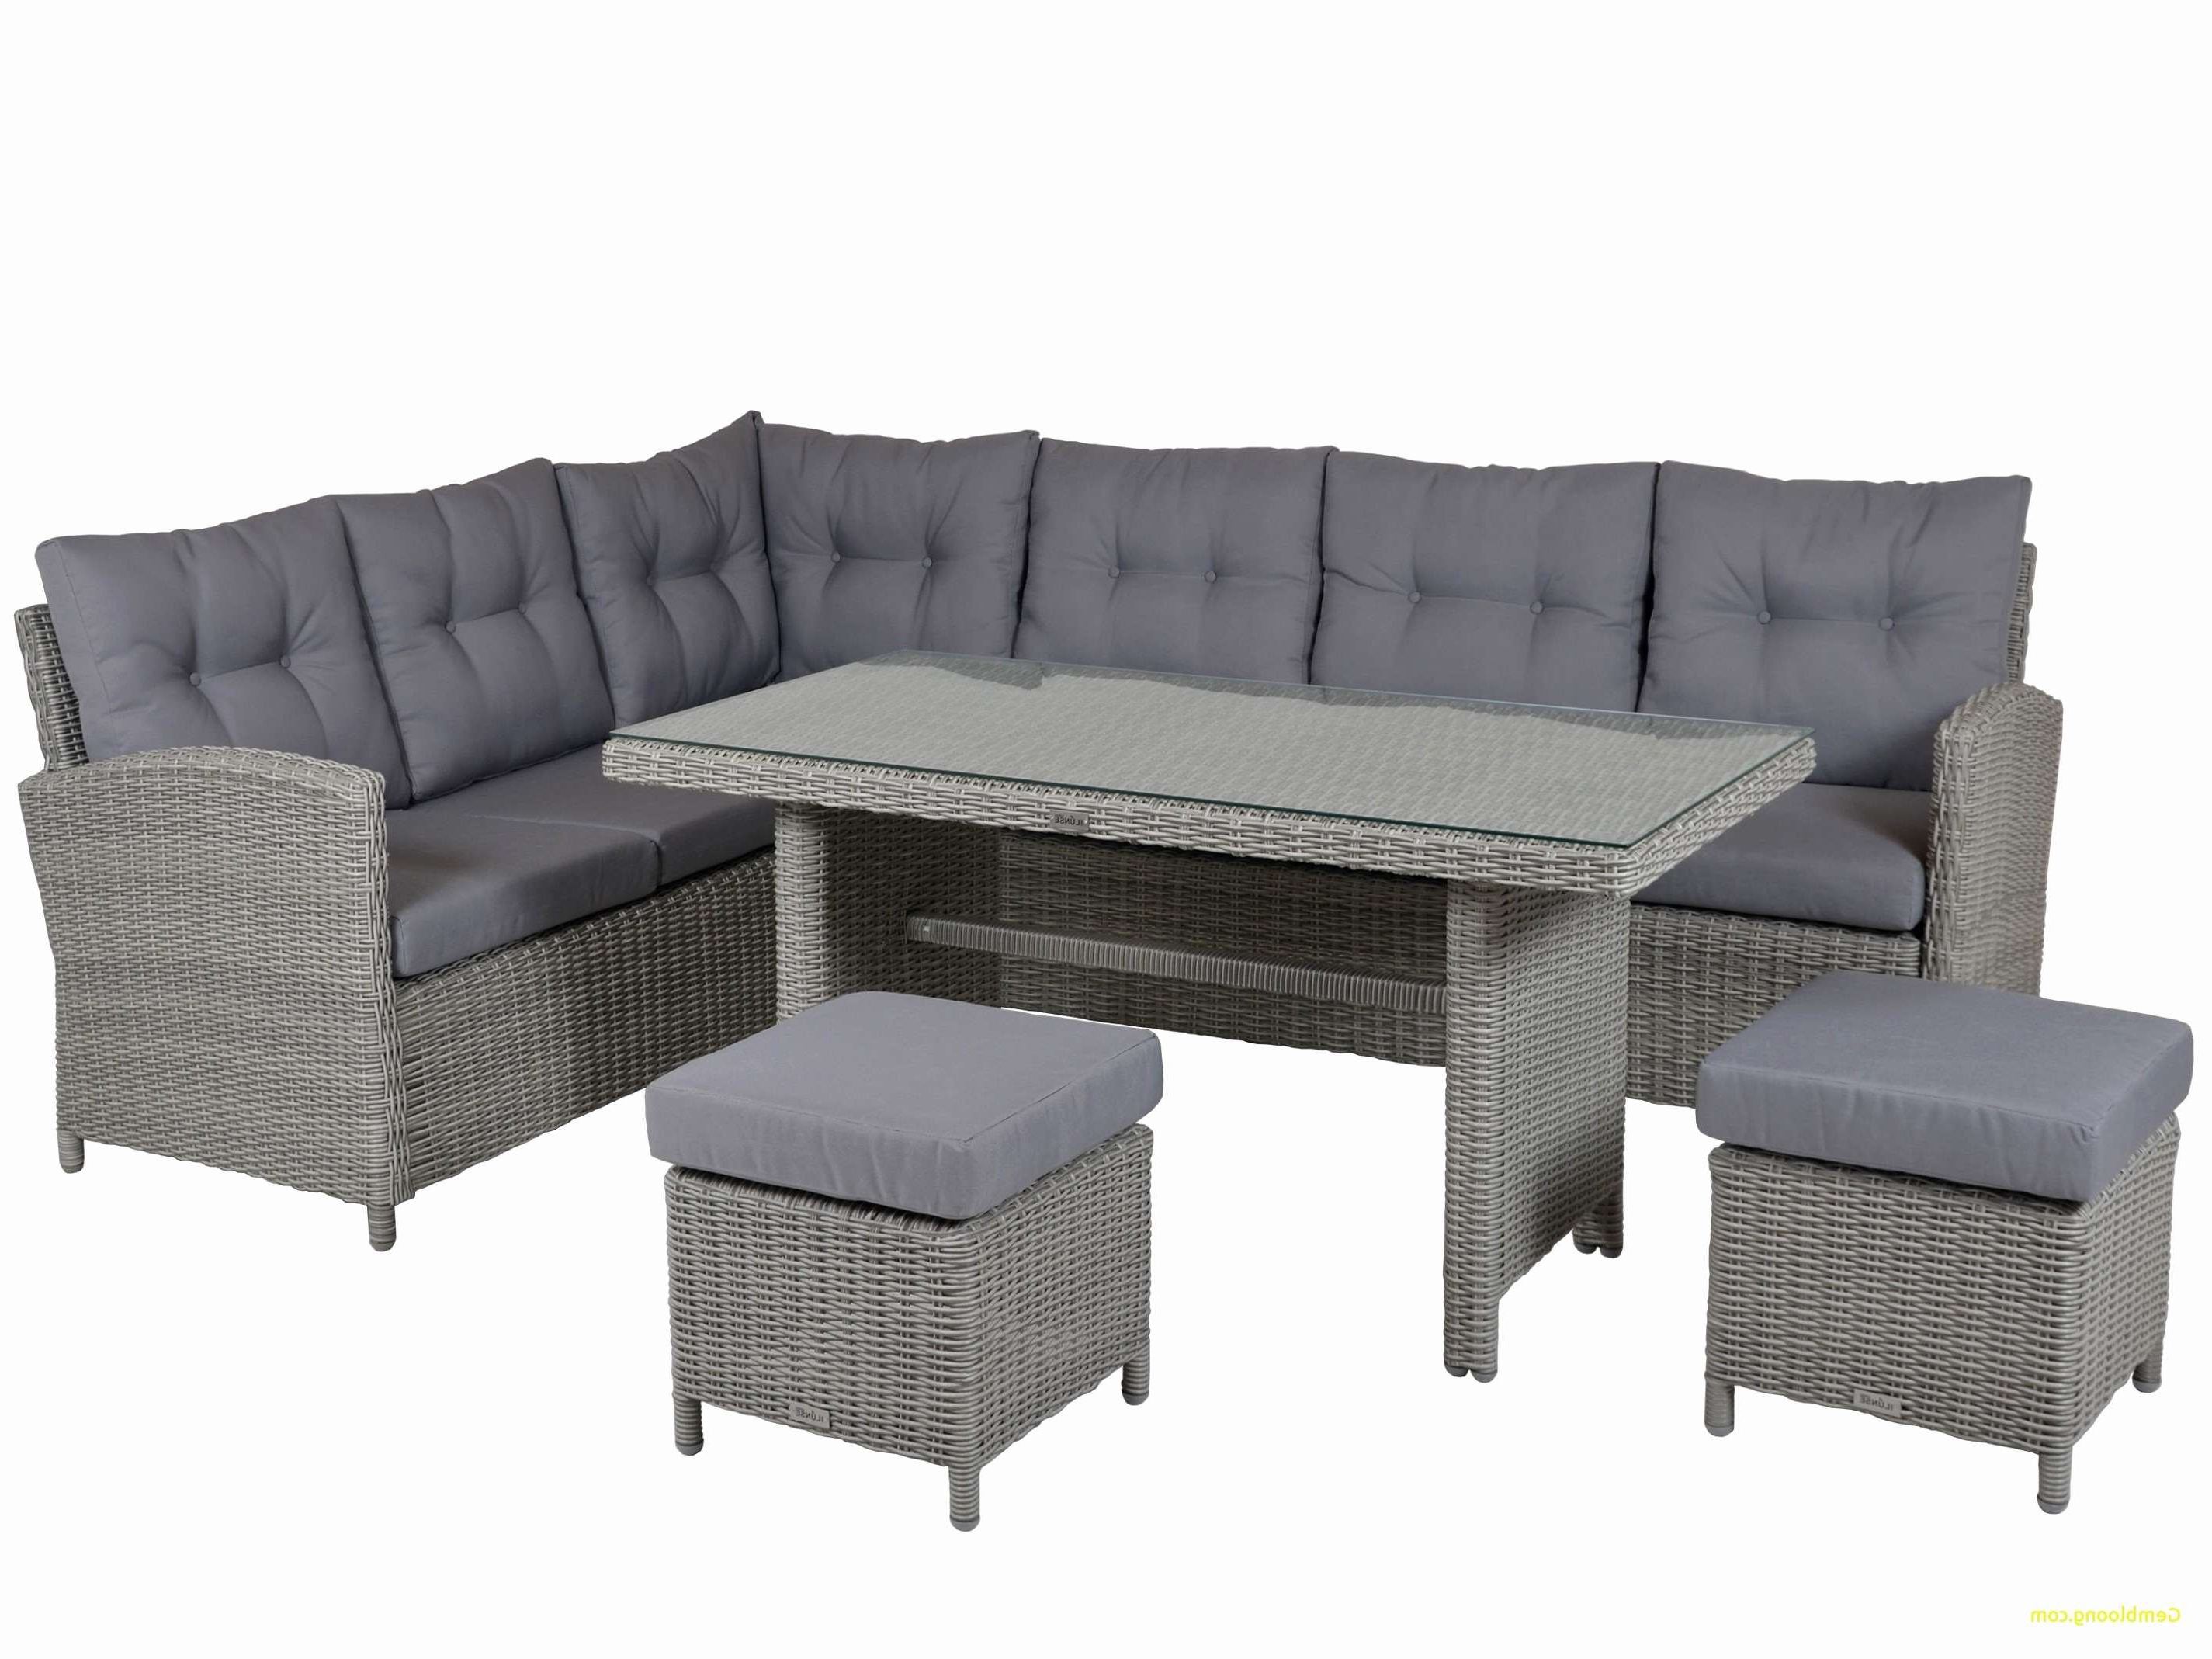 Preferred Fabulous 25 Power Reclining Sectional Sofa Favorite With Regard To Calder Grey 6 Piece Manual Reclining Sectionals (Gallery 5 of 20)